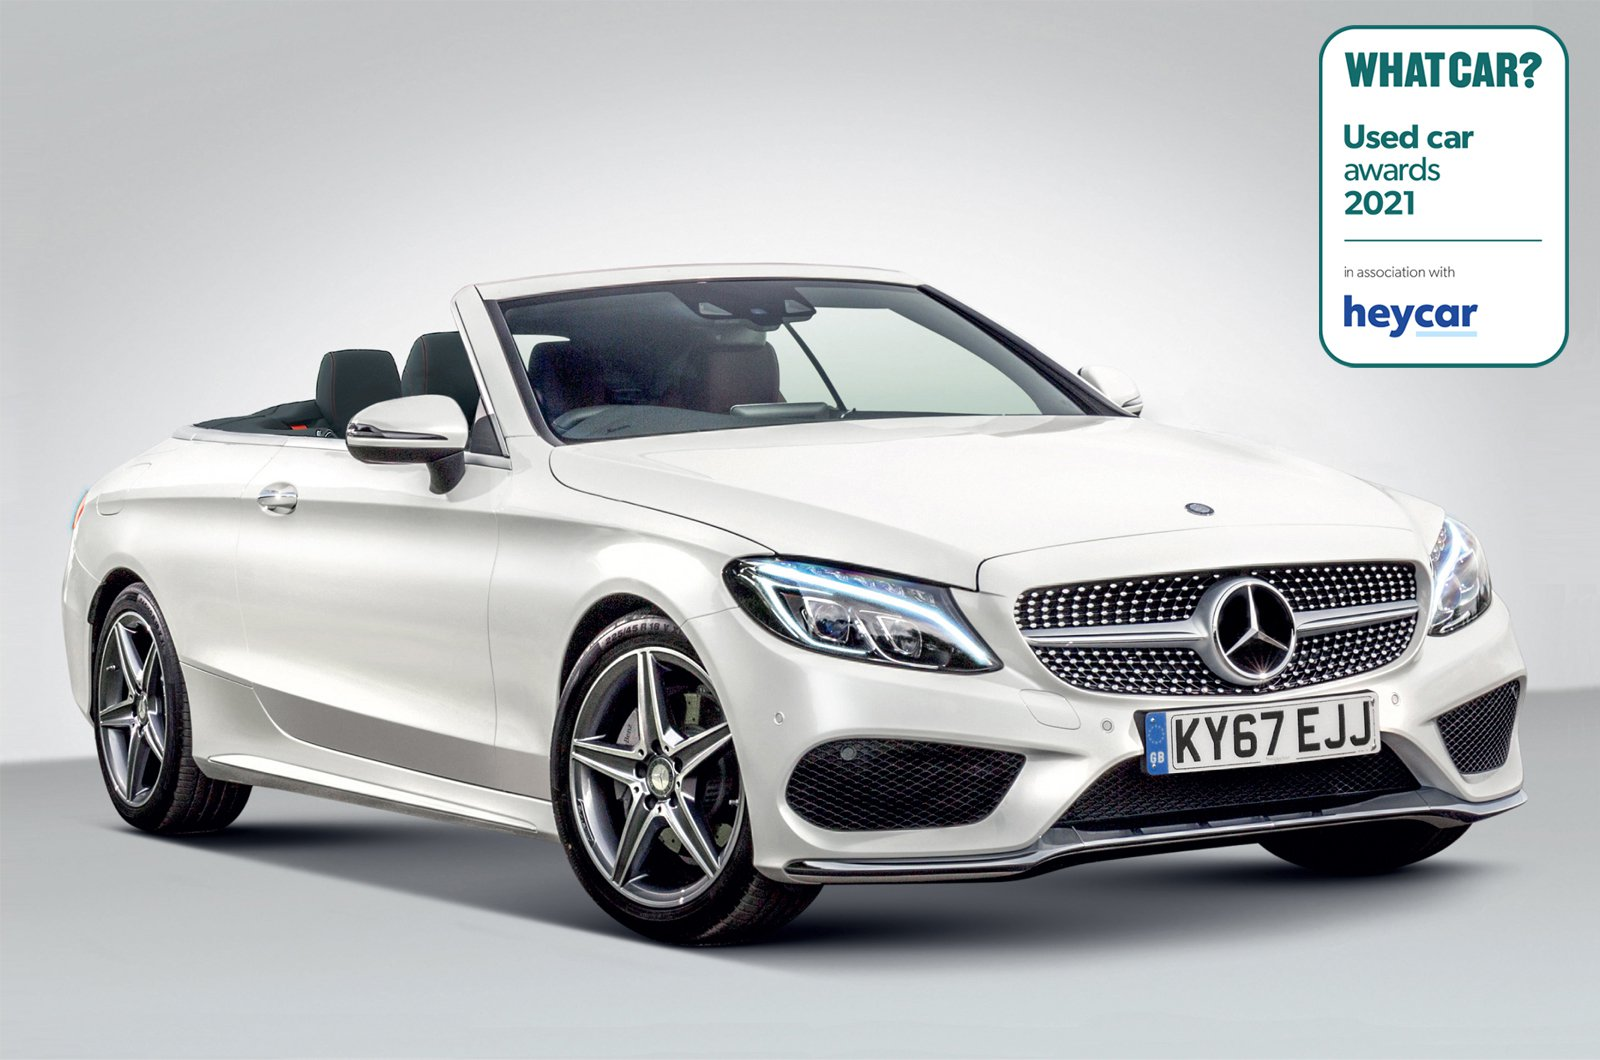 Used Car Awards 2021 - Mercedes E-Class Cabriolet